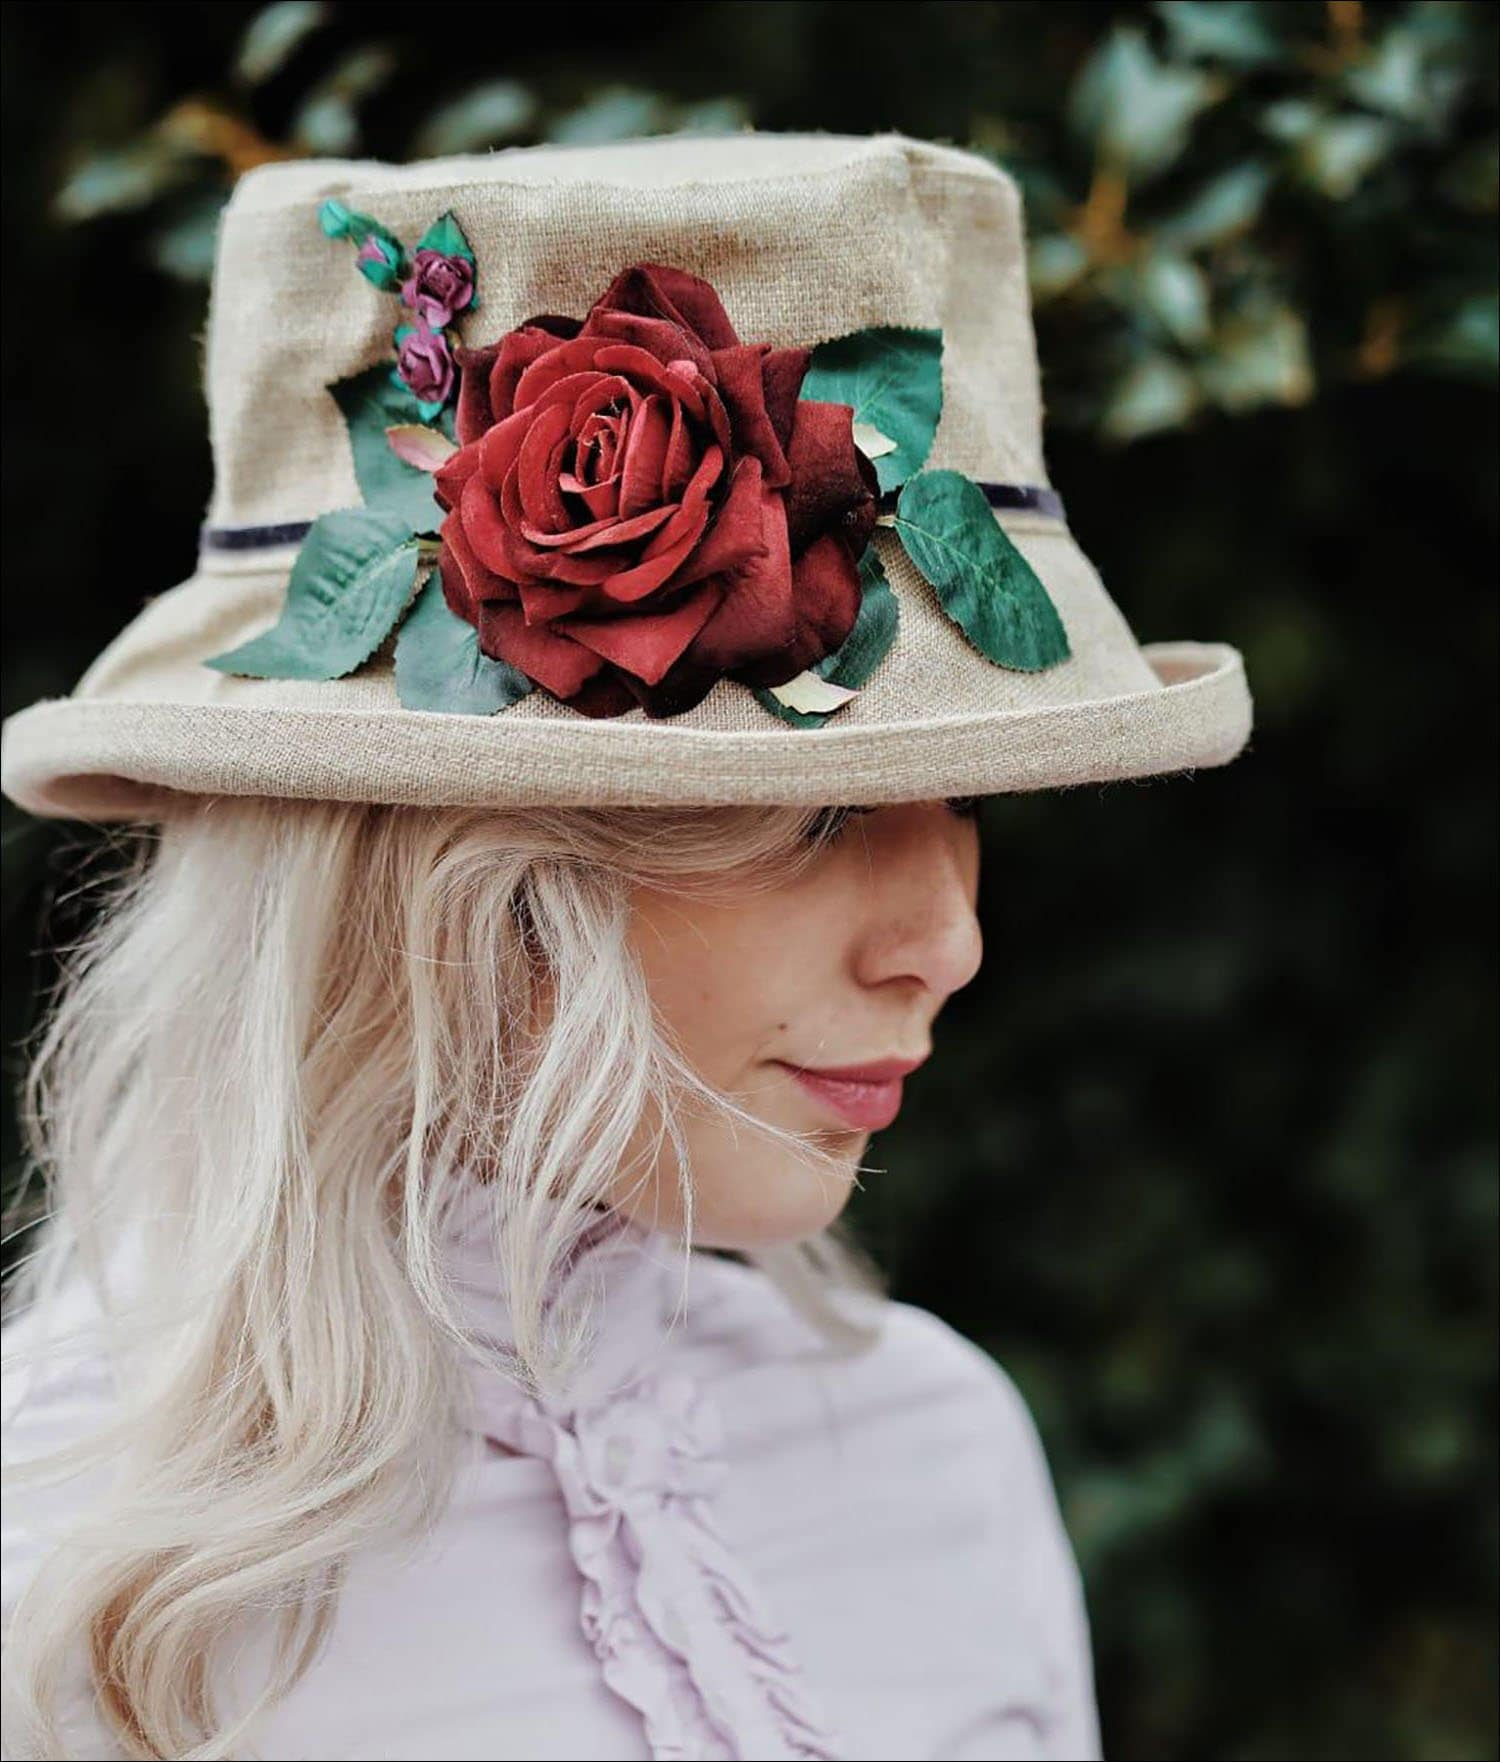 Red Rose Country Hat For Women, Vintage English Countryside Fashion, Natural Linen Hand Sewn Hat, Summer Garden Party Travel Beach